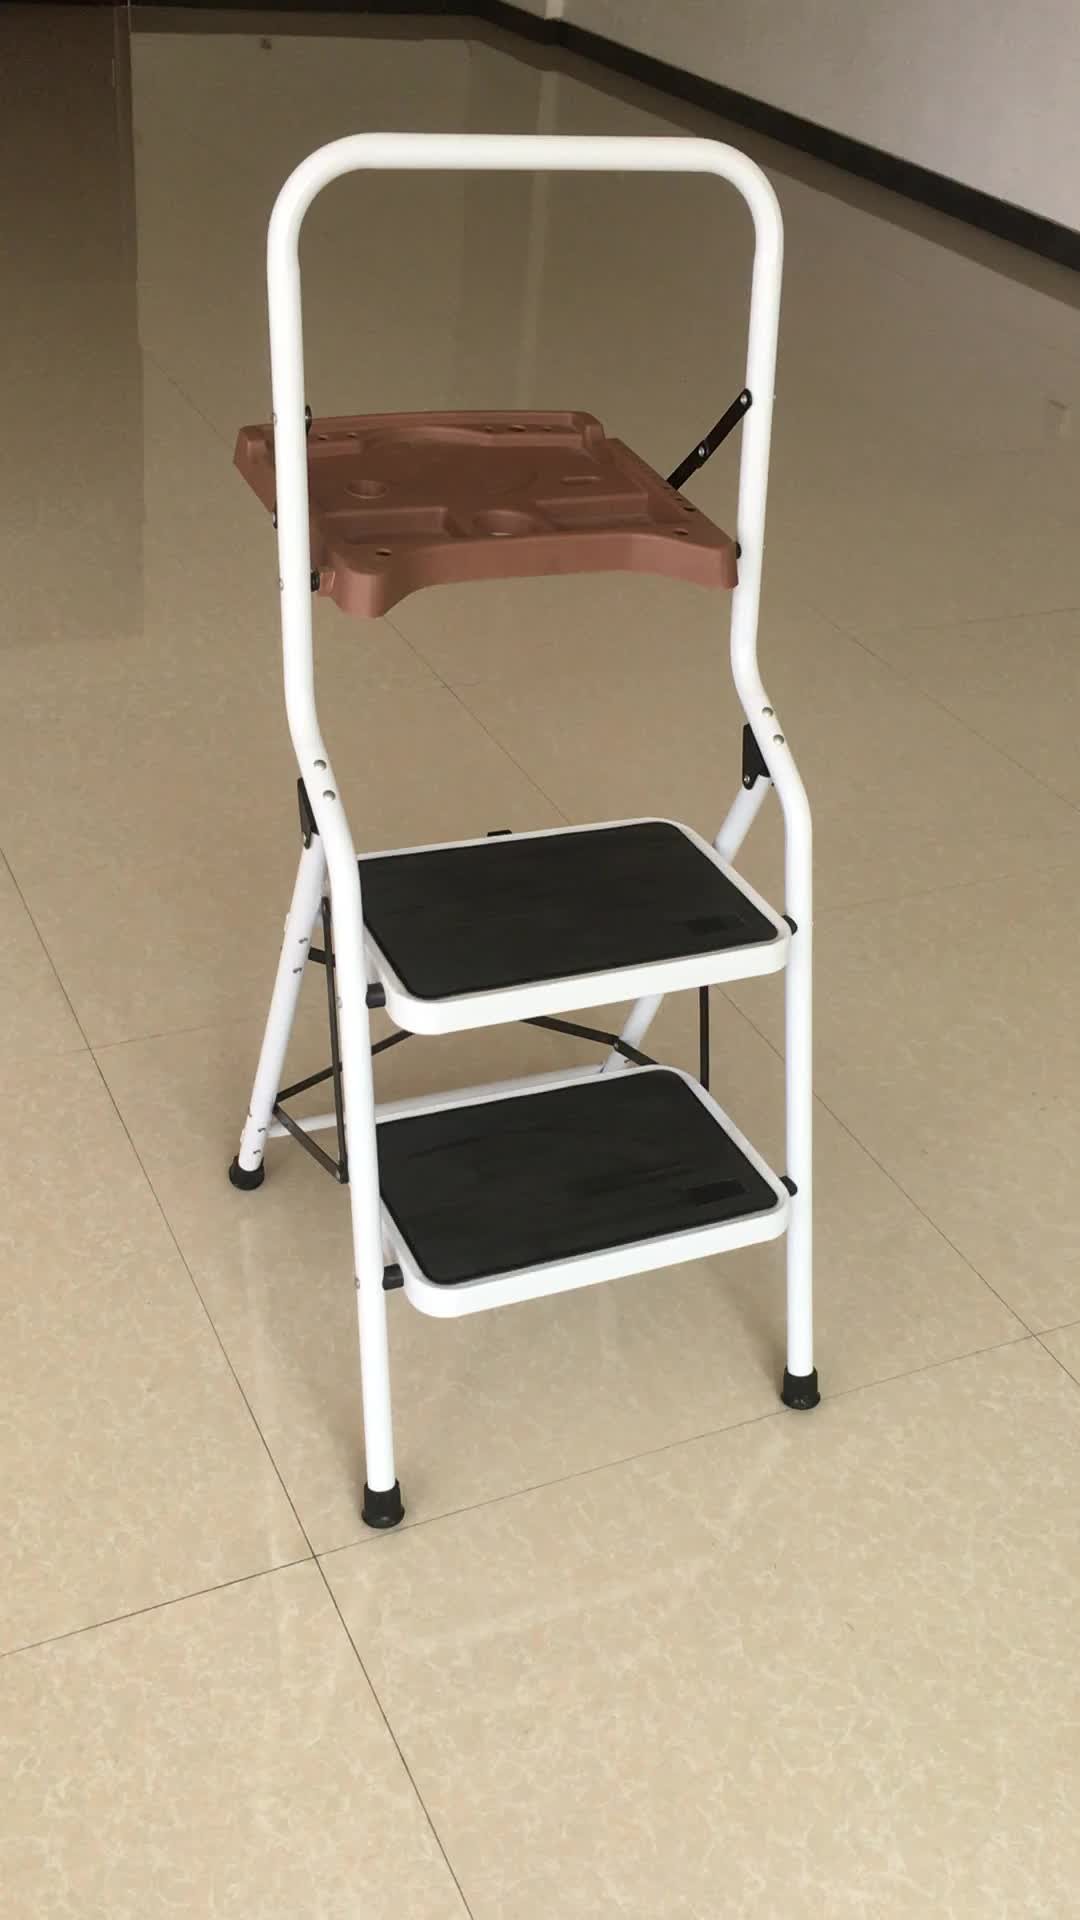 Domestic Ladders Type And Ladder Stools Step Stool